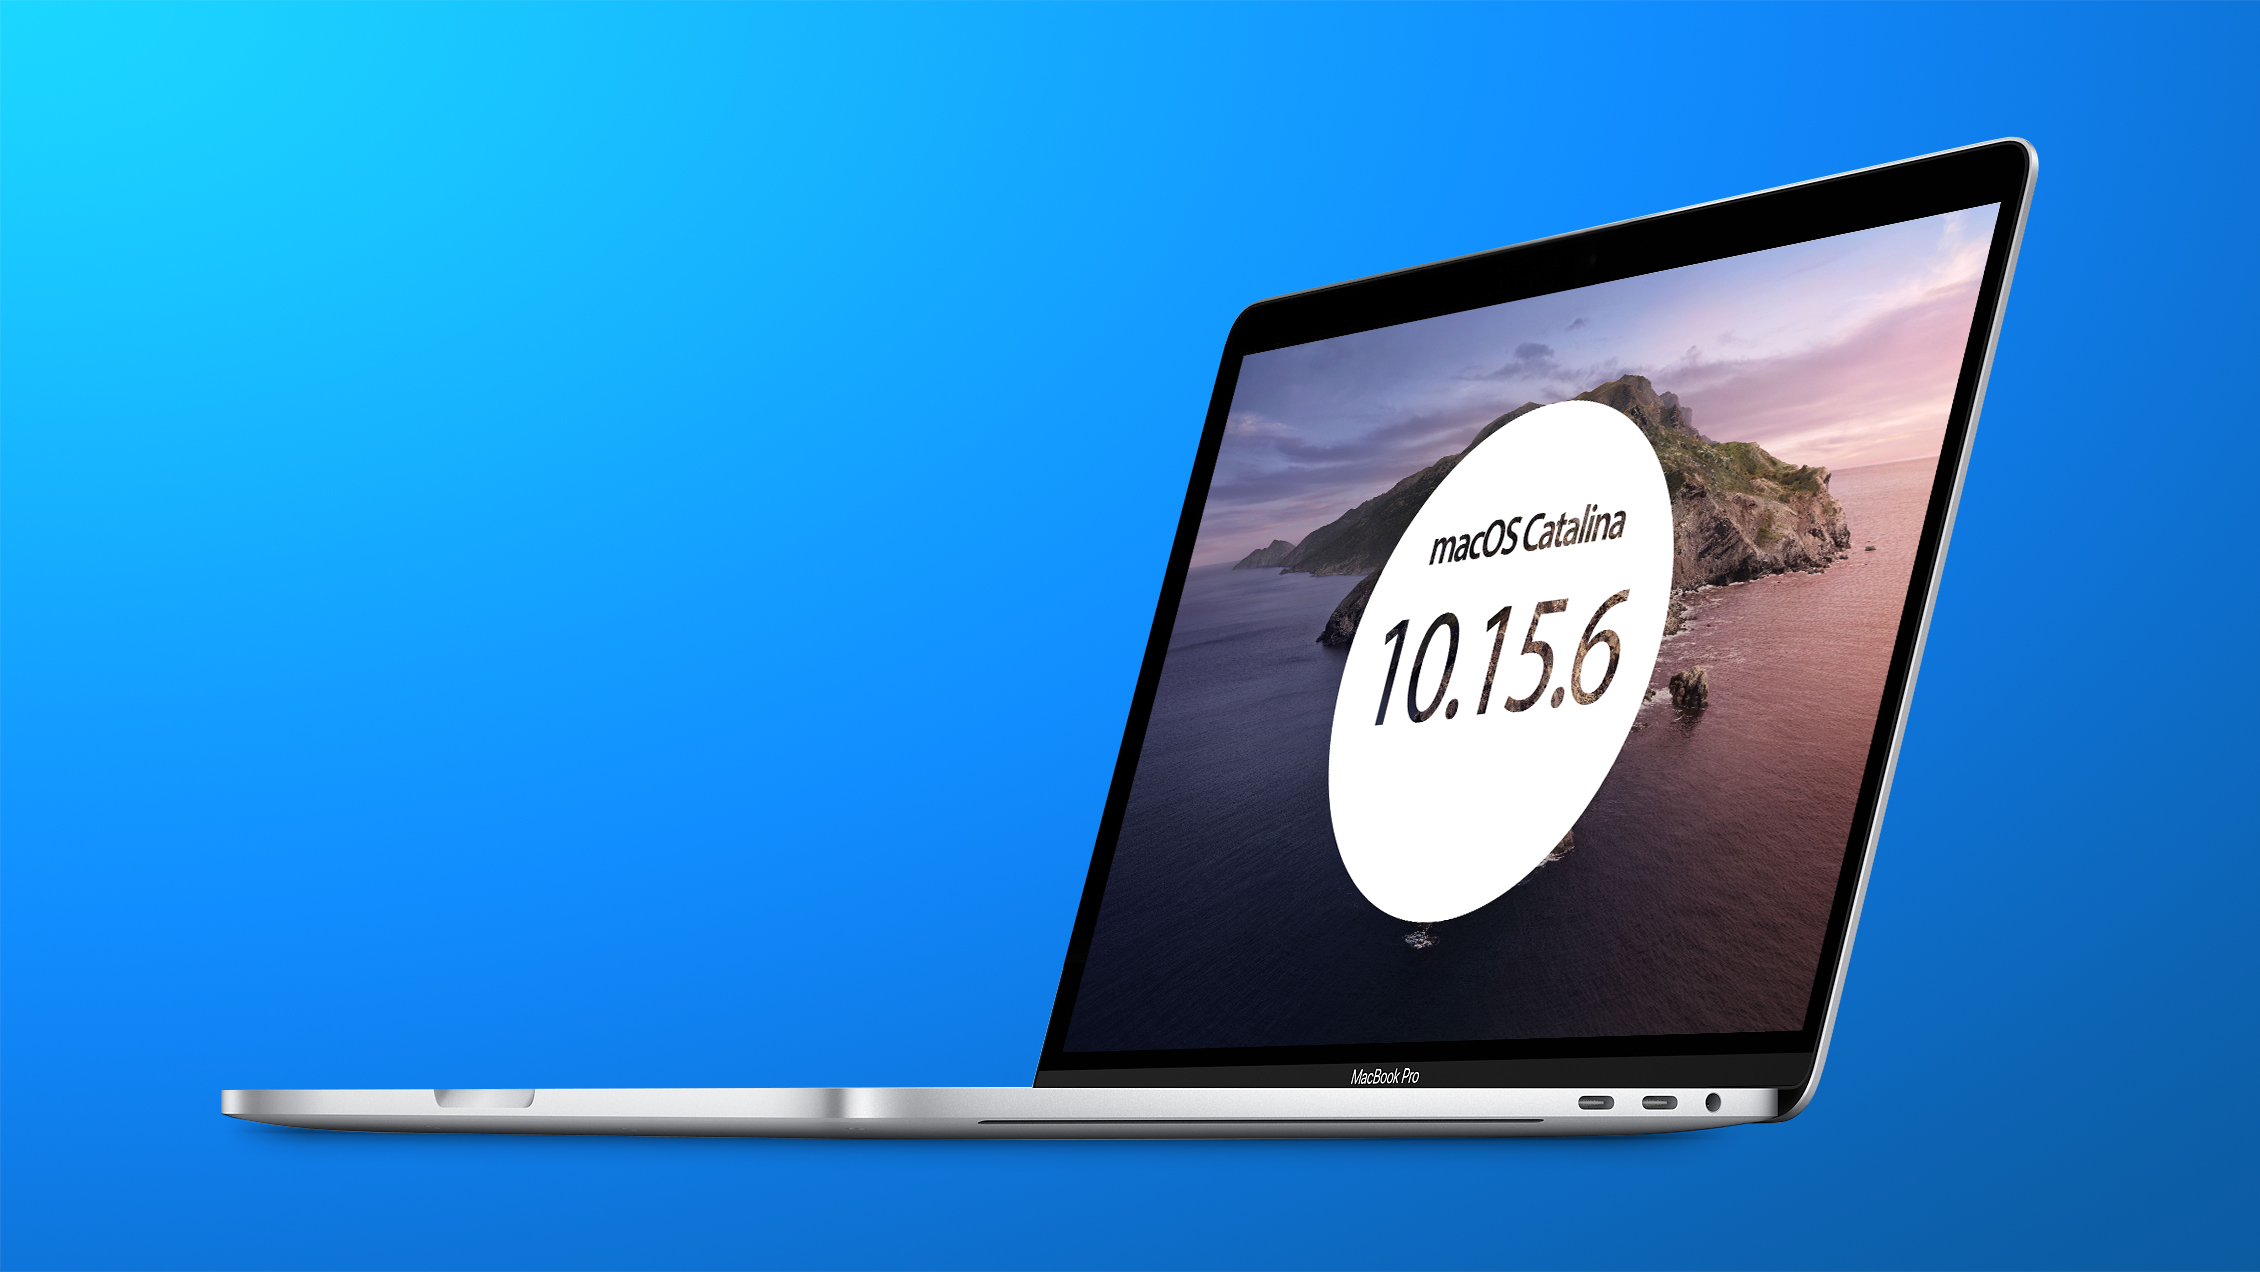 Apple Releases macOS Catalina 10.15.6 Supplemental Update With Virtualization Bug Fix - MacRumors